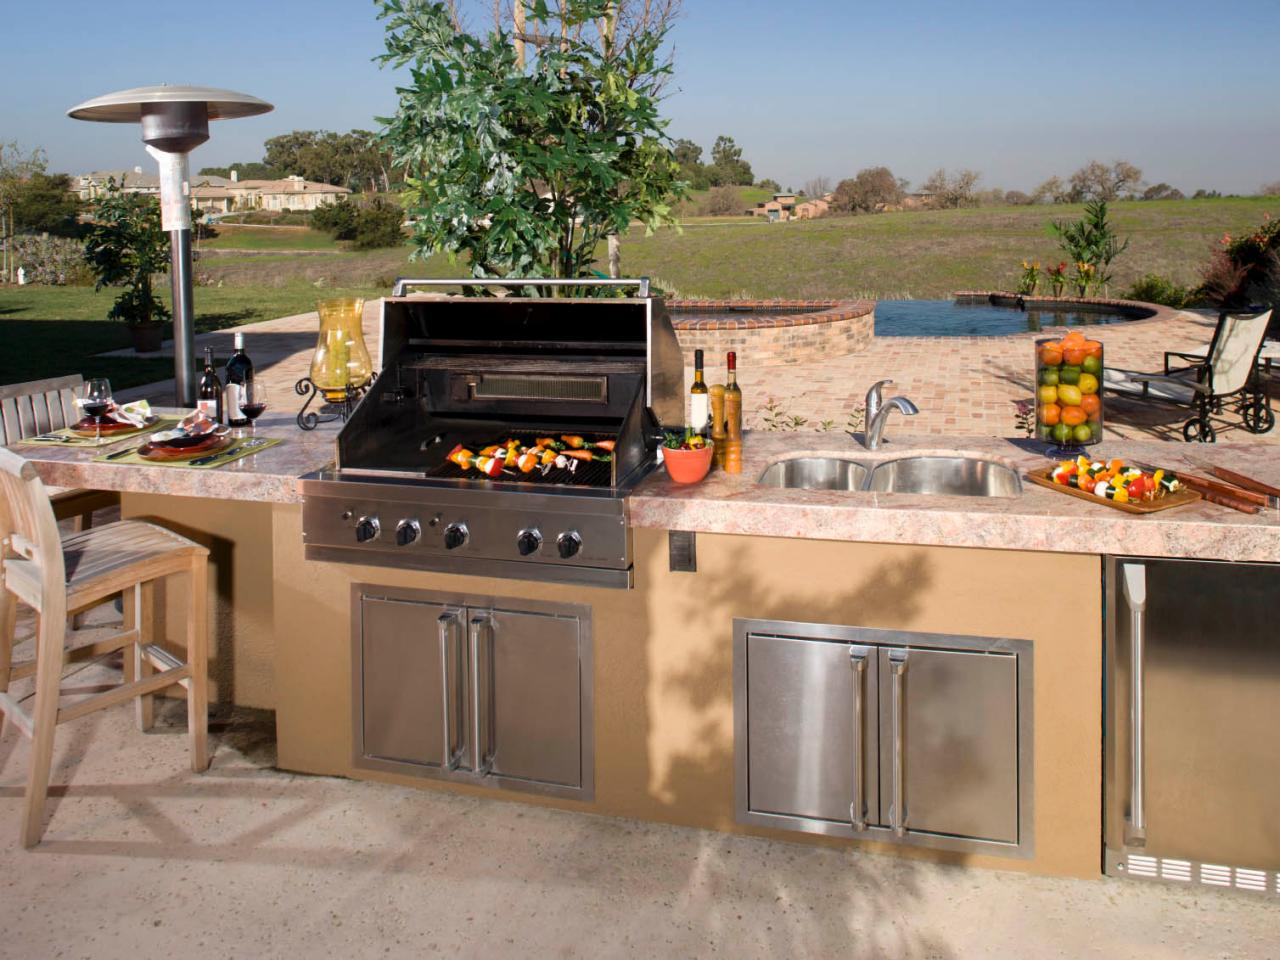 Outdoor Kitchen Designs Fascinating Outdoor Kitchen Design Ideas Pictures Tips & Expert Advice  Hgtv Decorating Inspiration